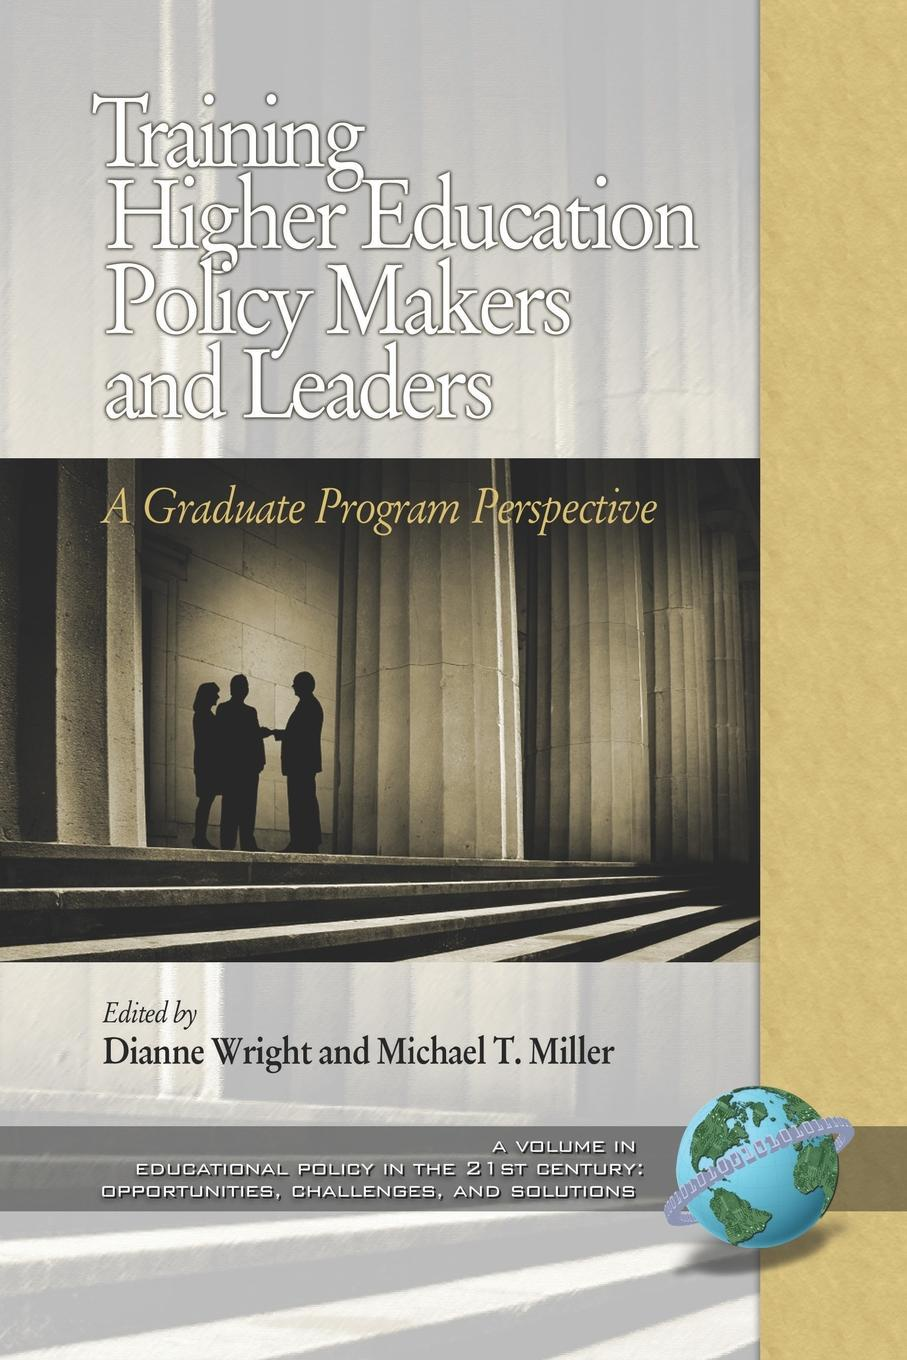 Training Higher Education Policy Makers and Leaders. A Graduate Program Perspective (PB) mario c martinez mimi wolverton innovative strategy making in higher education pb